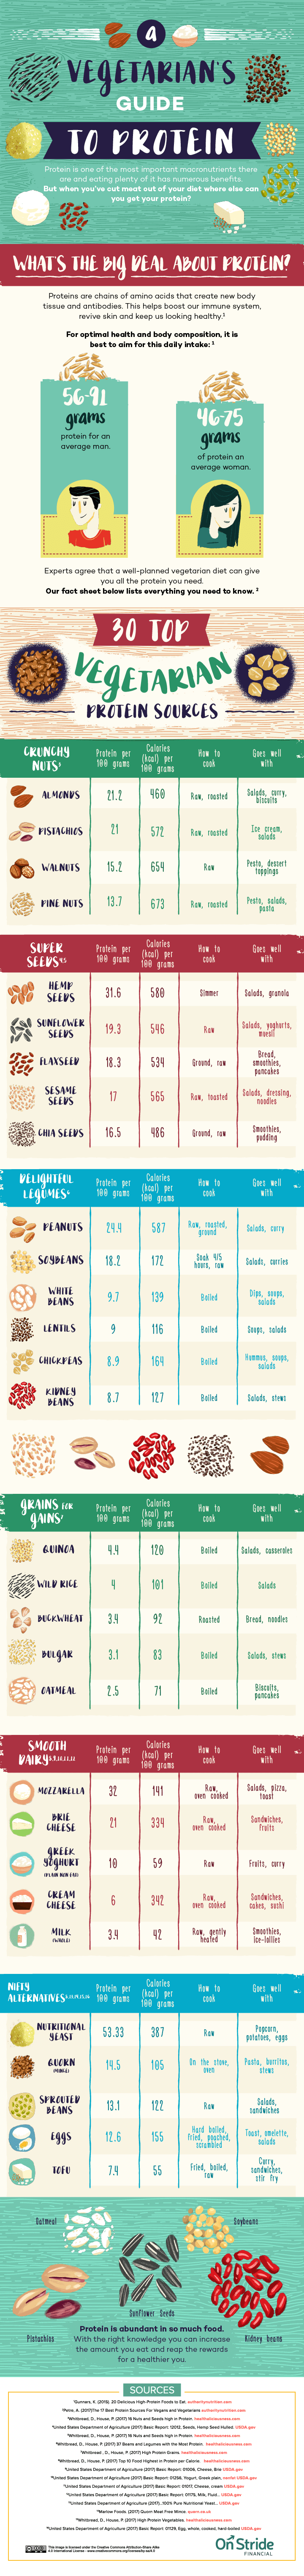 A Protein Guide For Vegetarians - Infographic